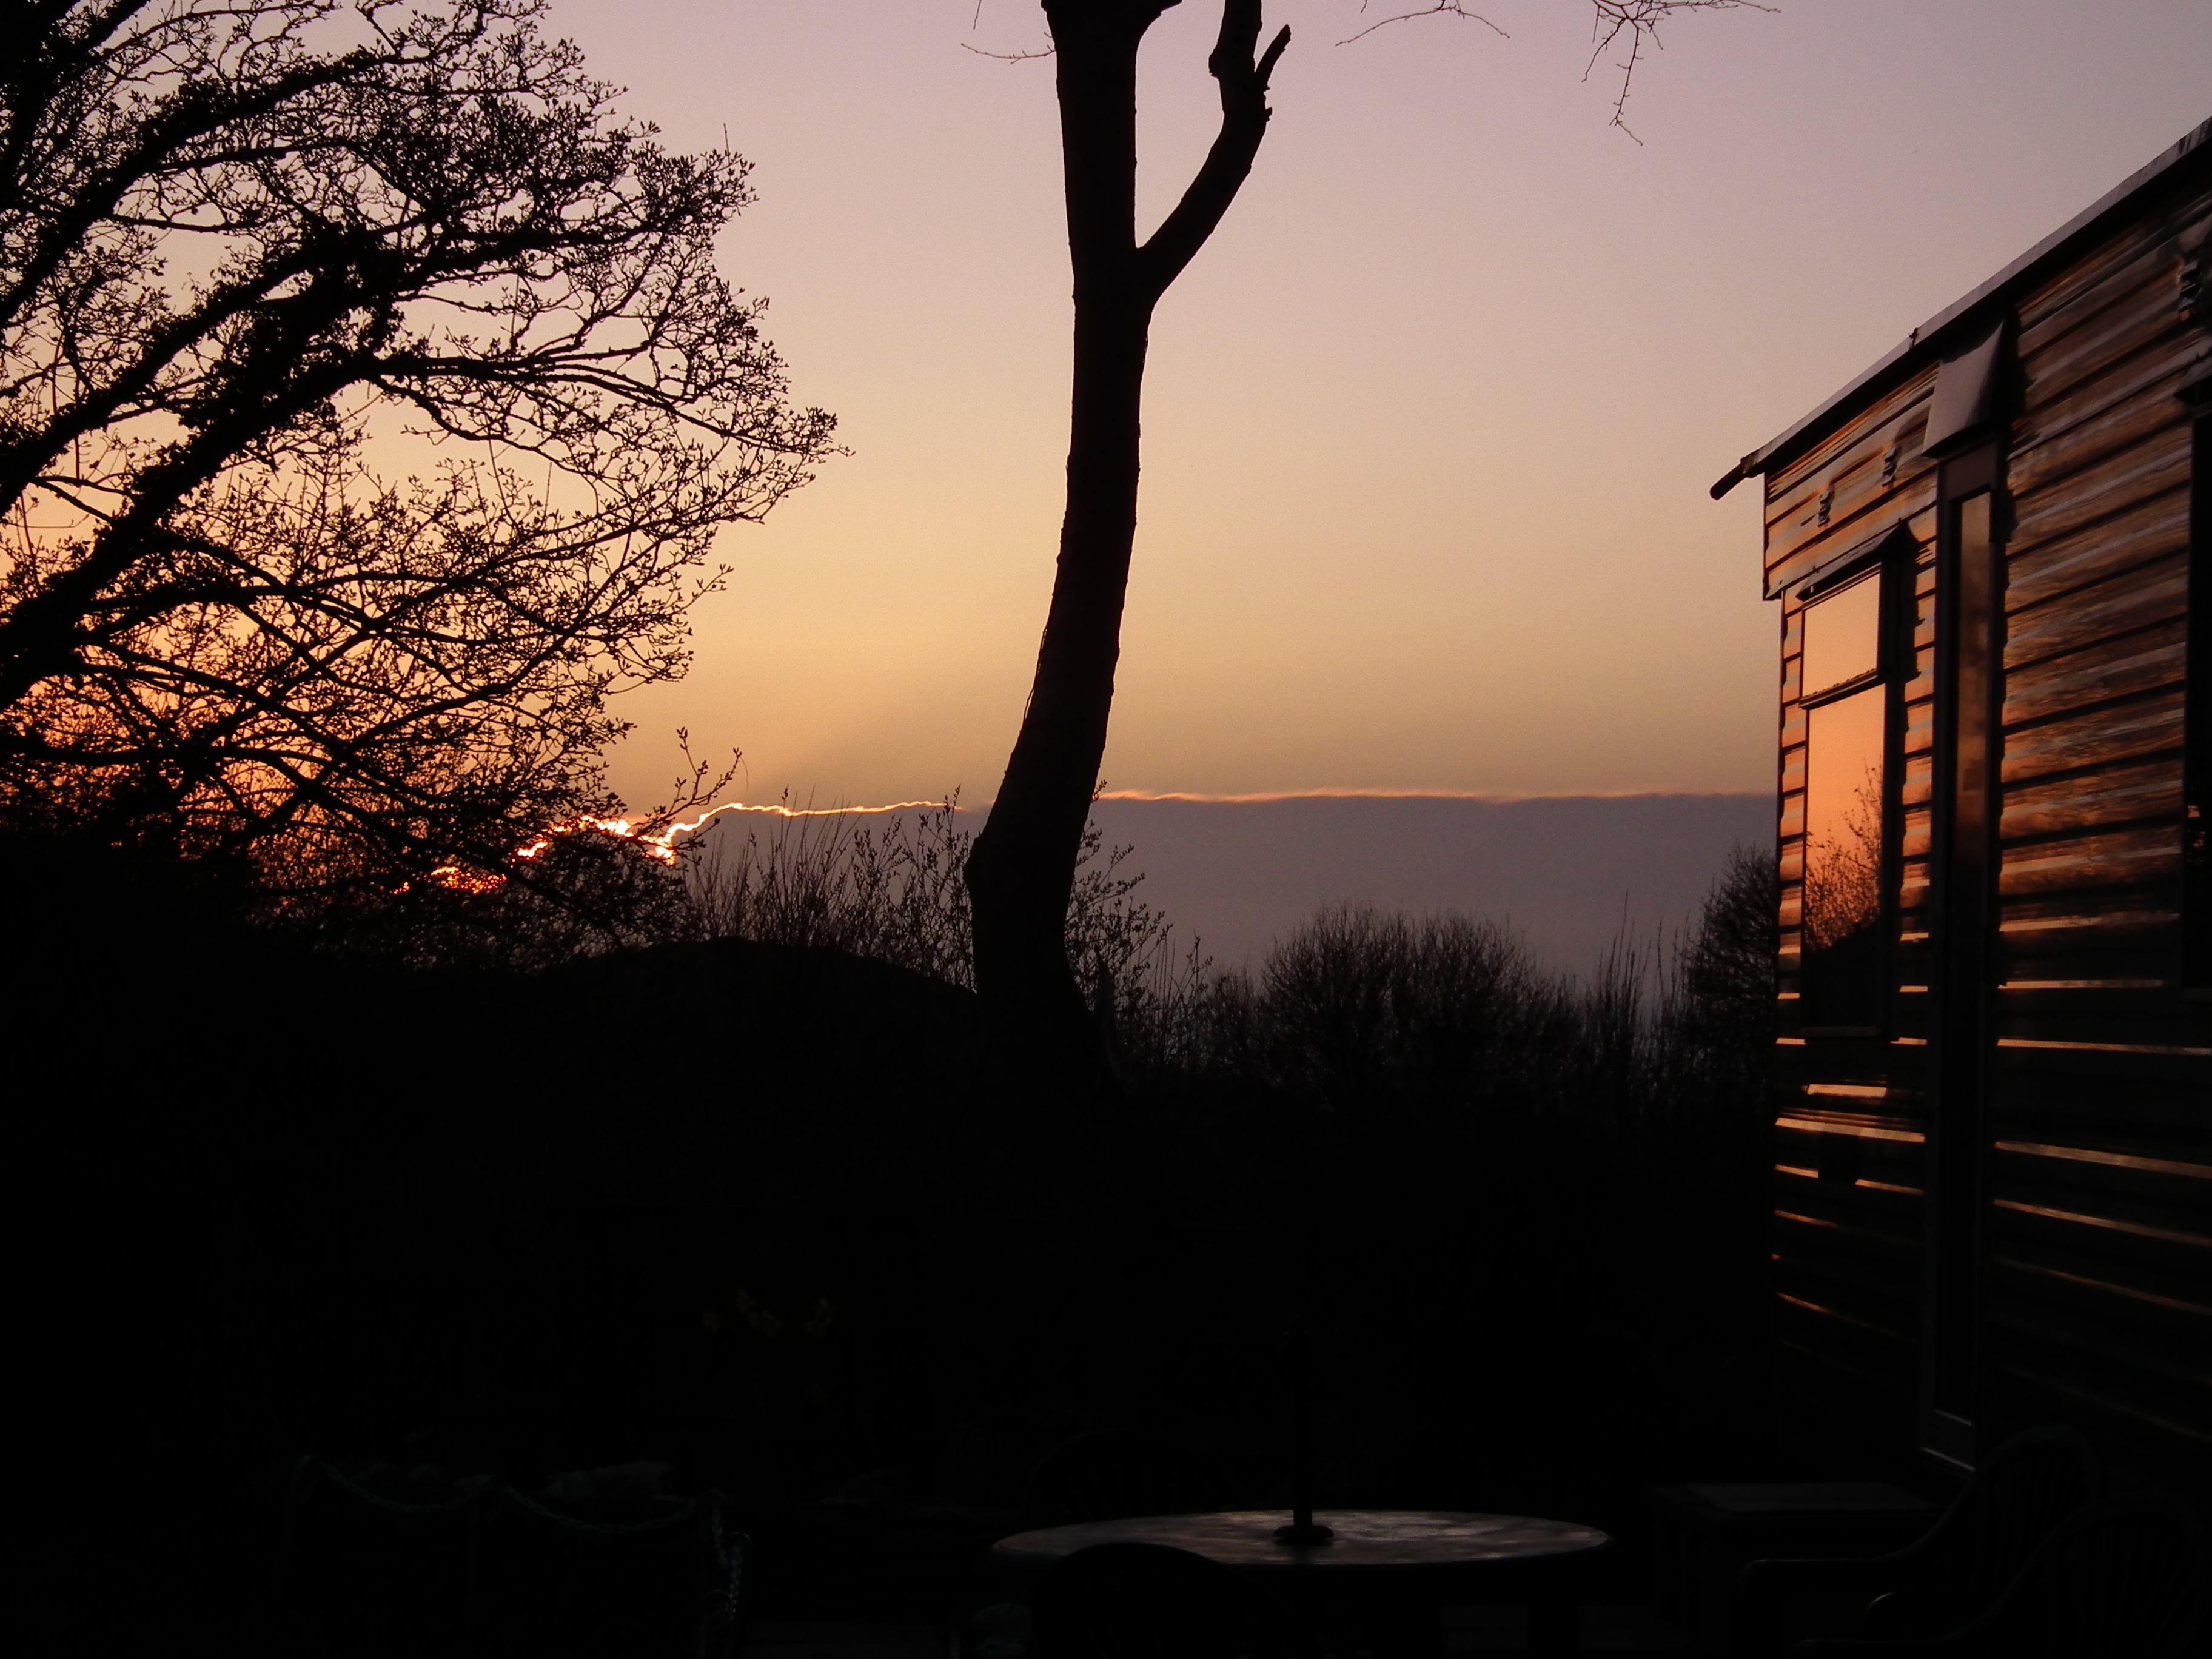 sunset at Maes Glas